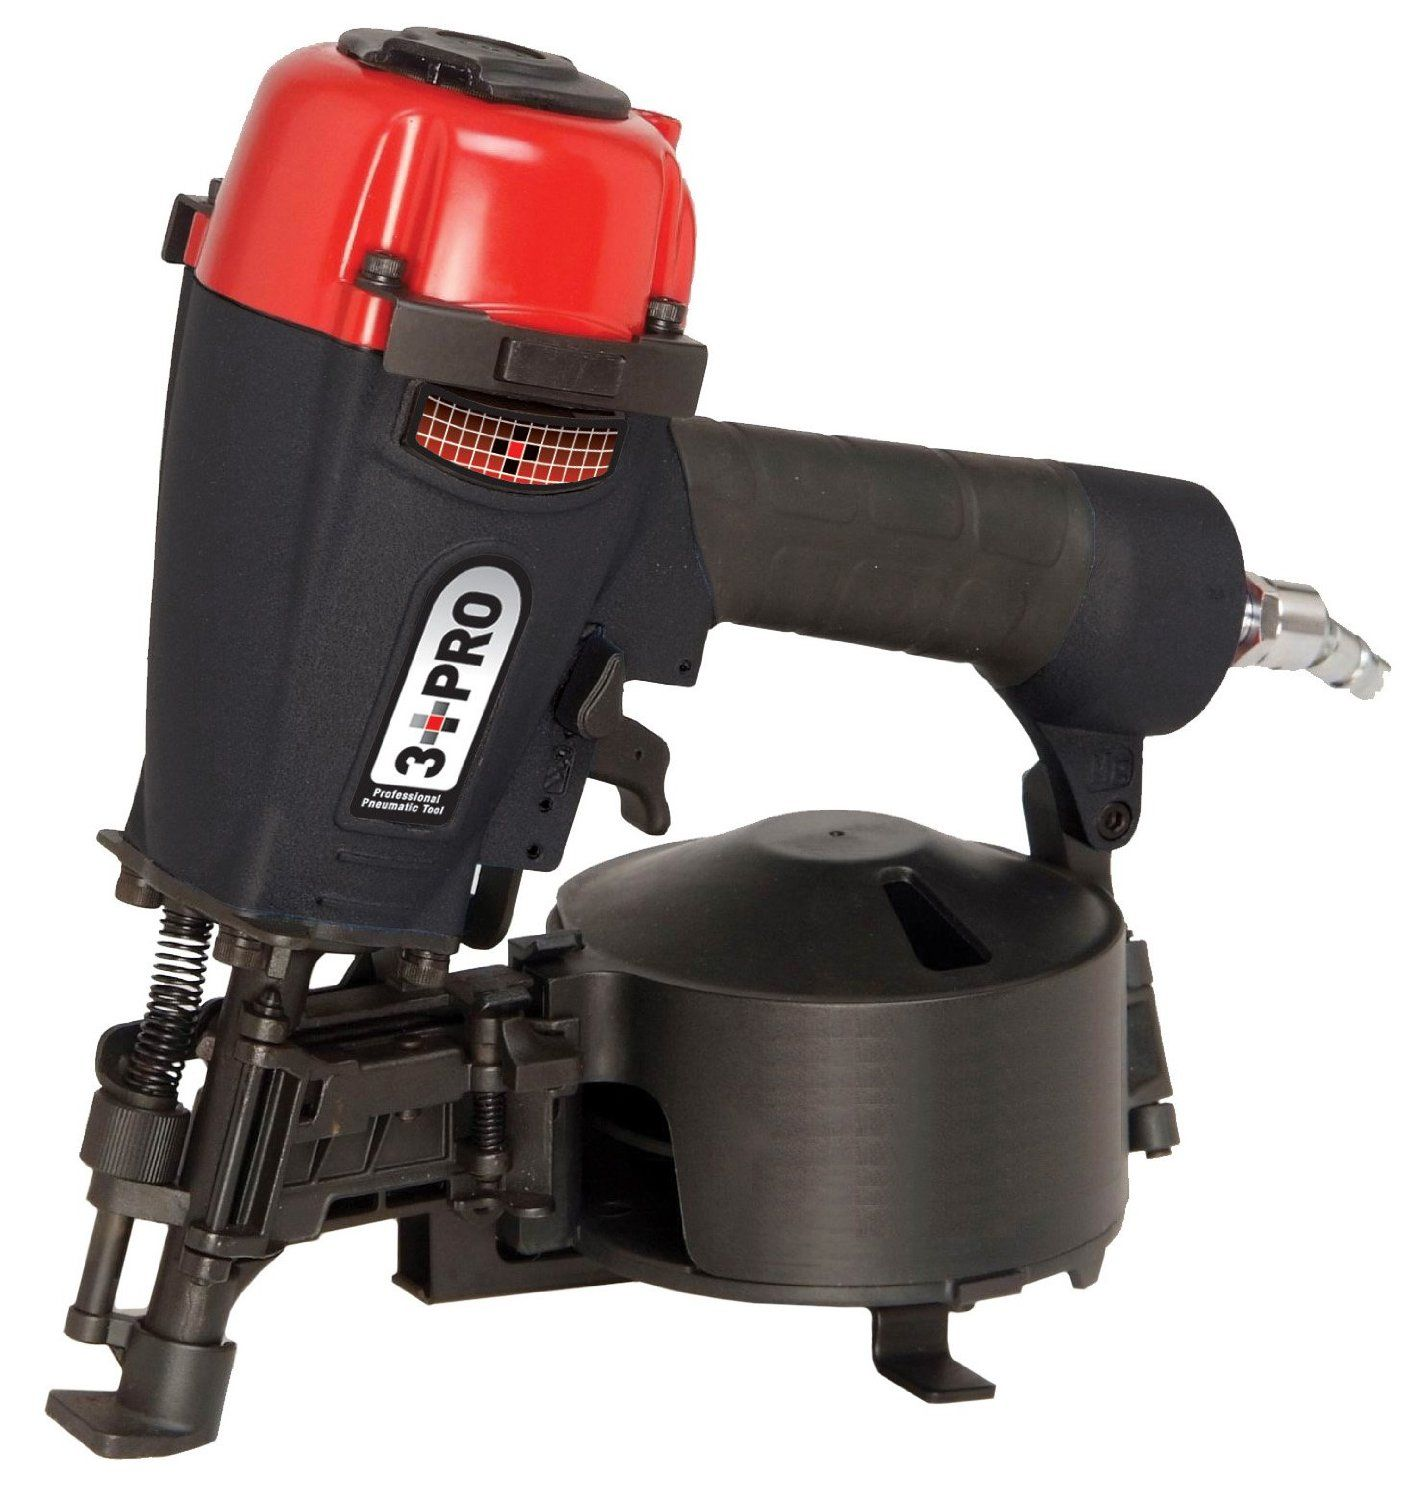 3 PRO CRN45P 11Gauge Roofing Nailer, 7/81 3/4Inch